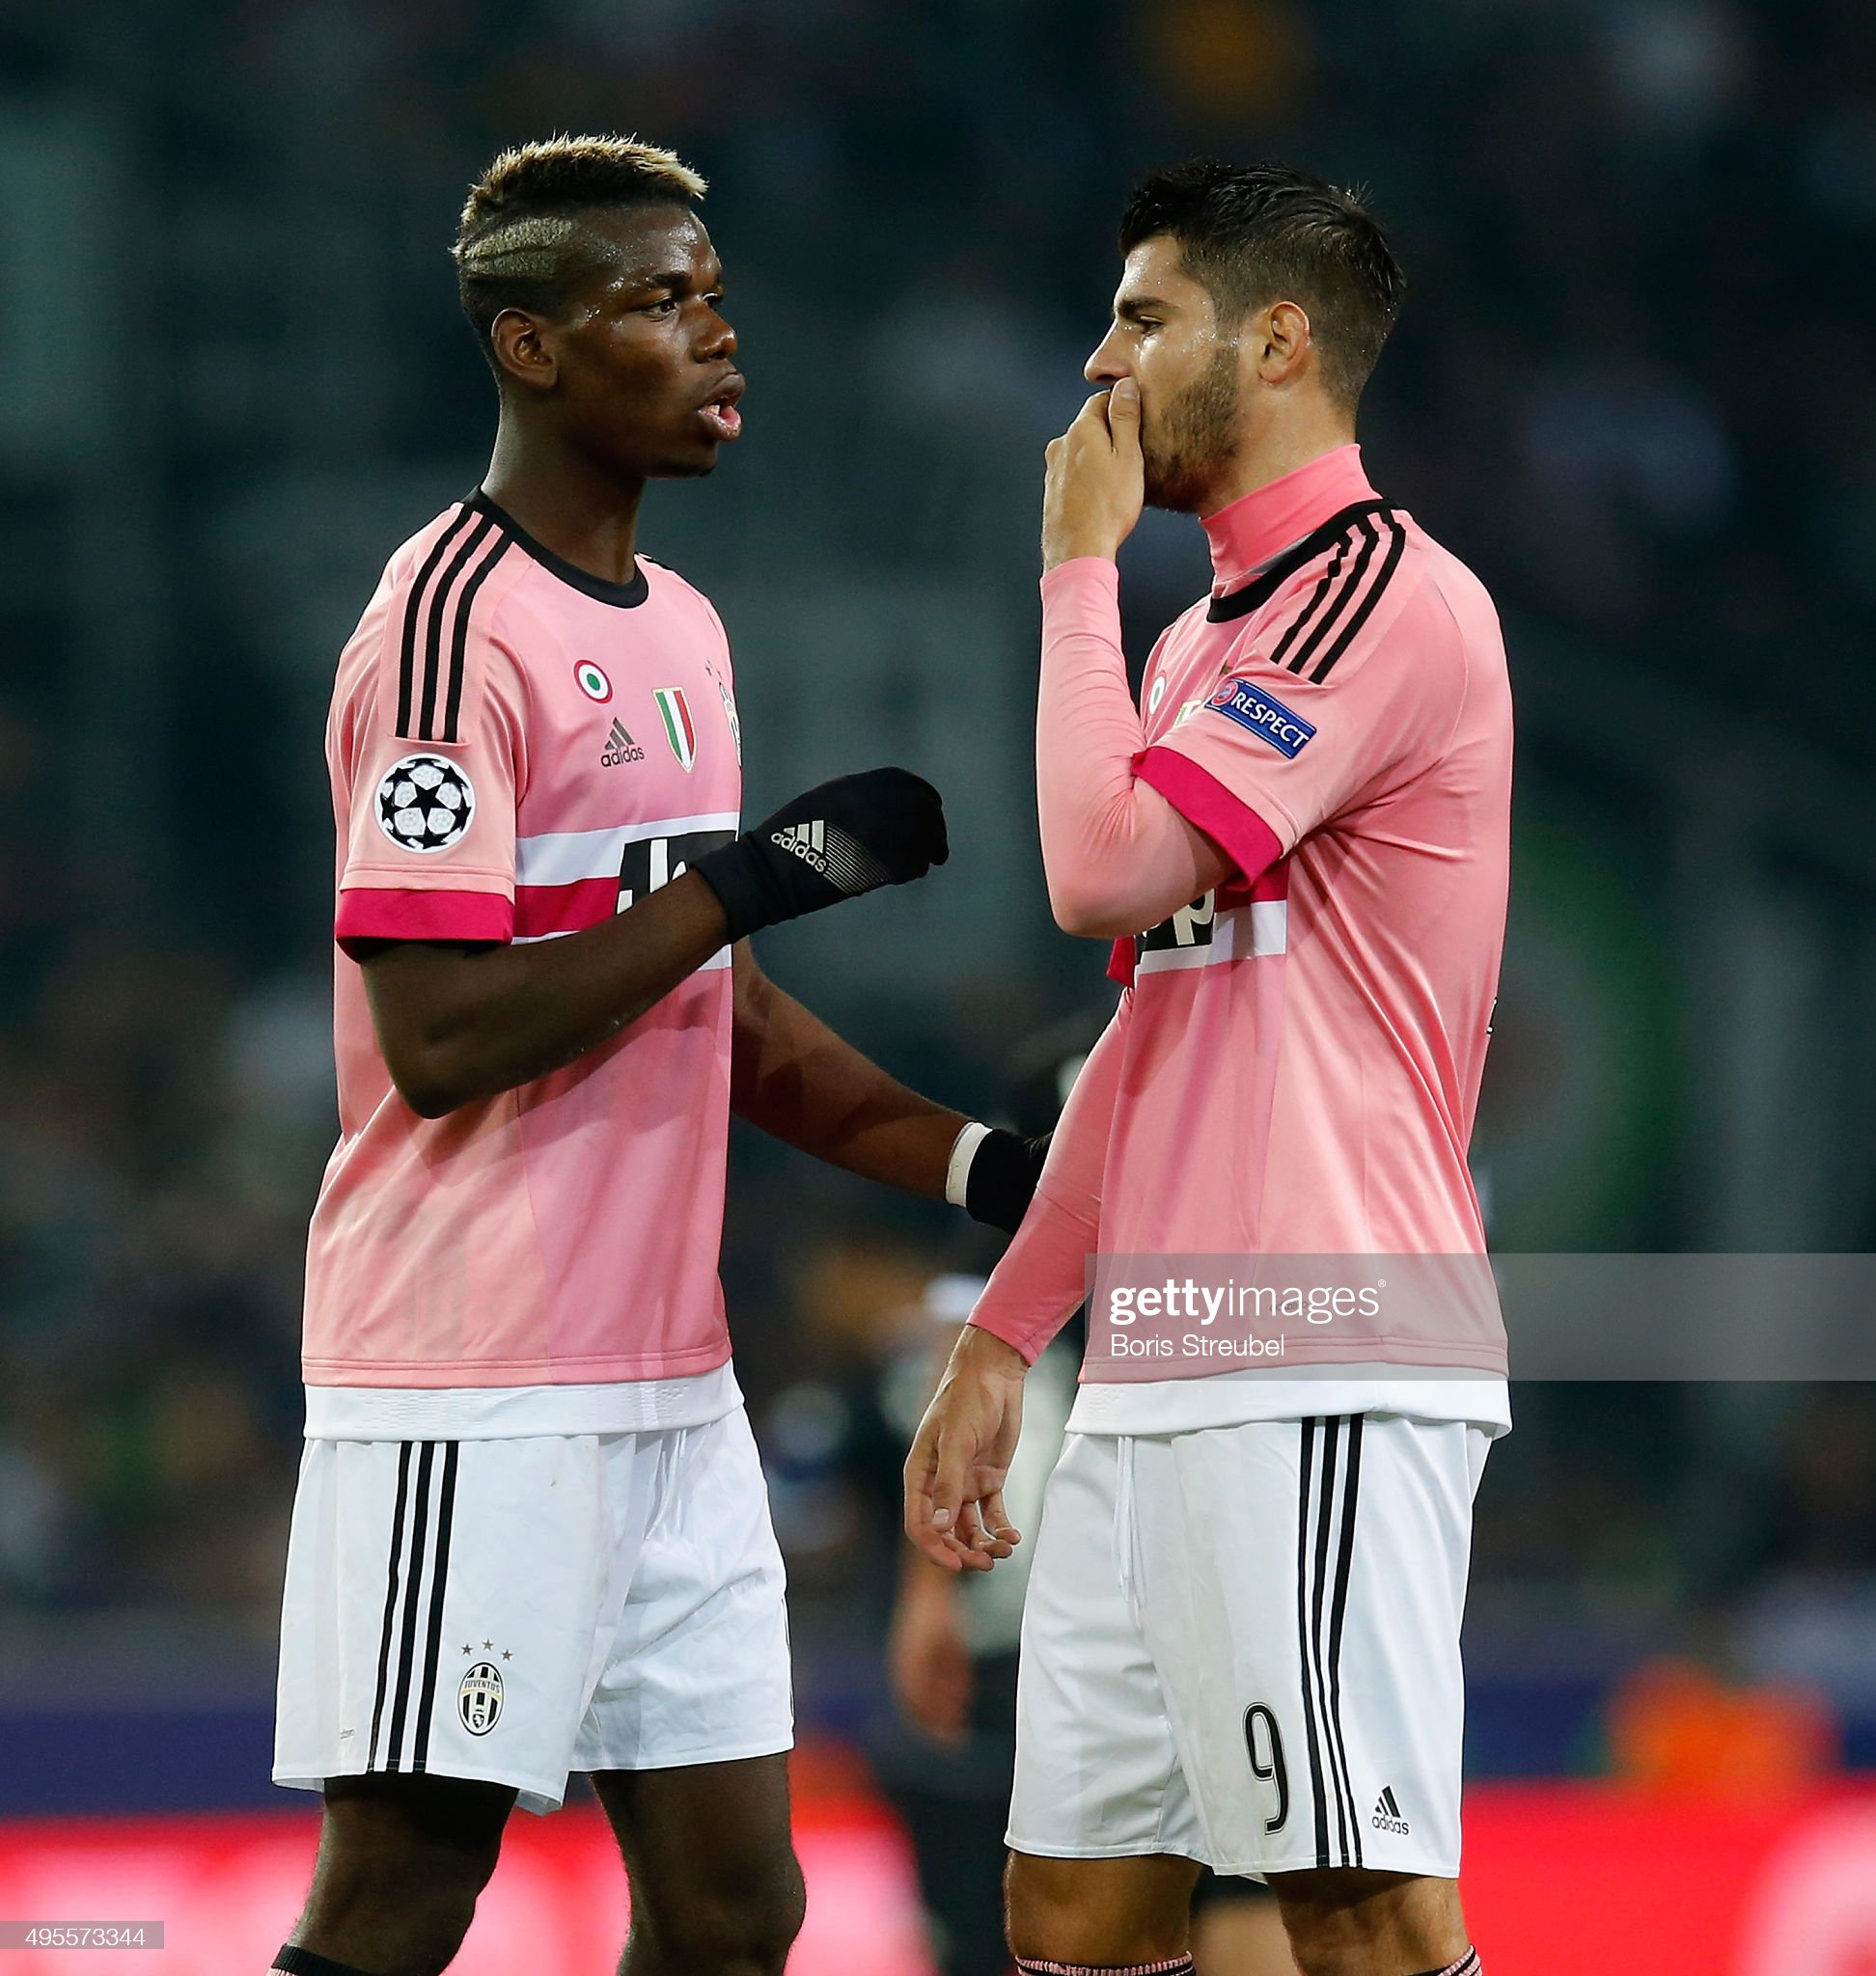 ¿Cuánto mide Álvaro Morata? - Altura - Real height Paul-pogba-of-juventus-reacts-with-alvaro-morata-during-the-uefa-d-picture-id495573344?s=2048x2048